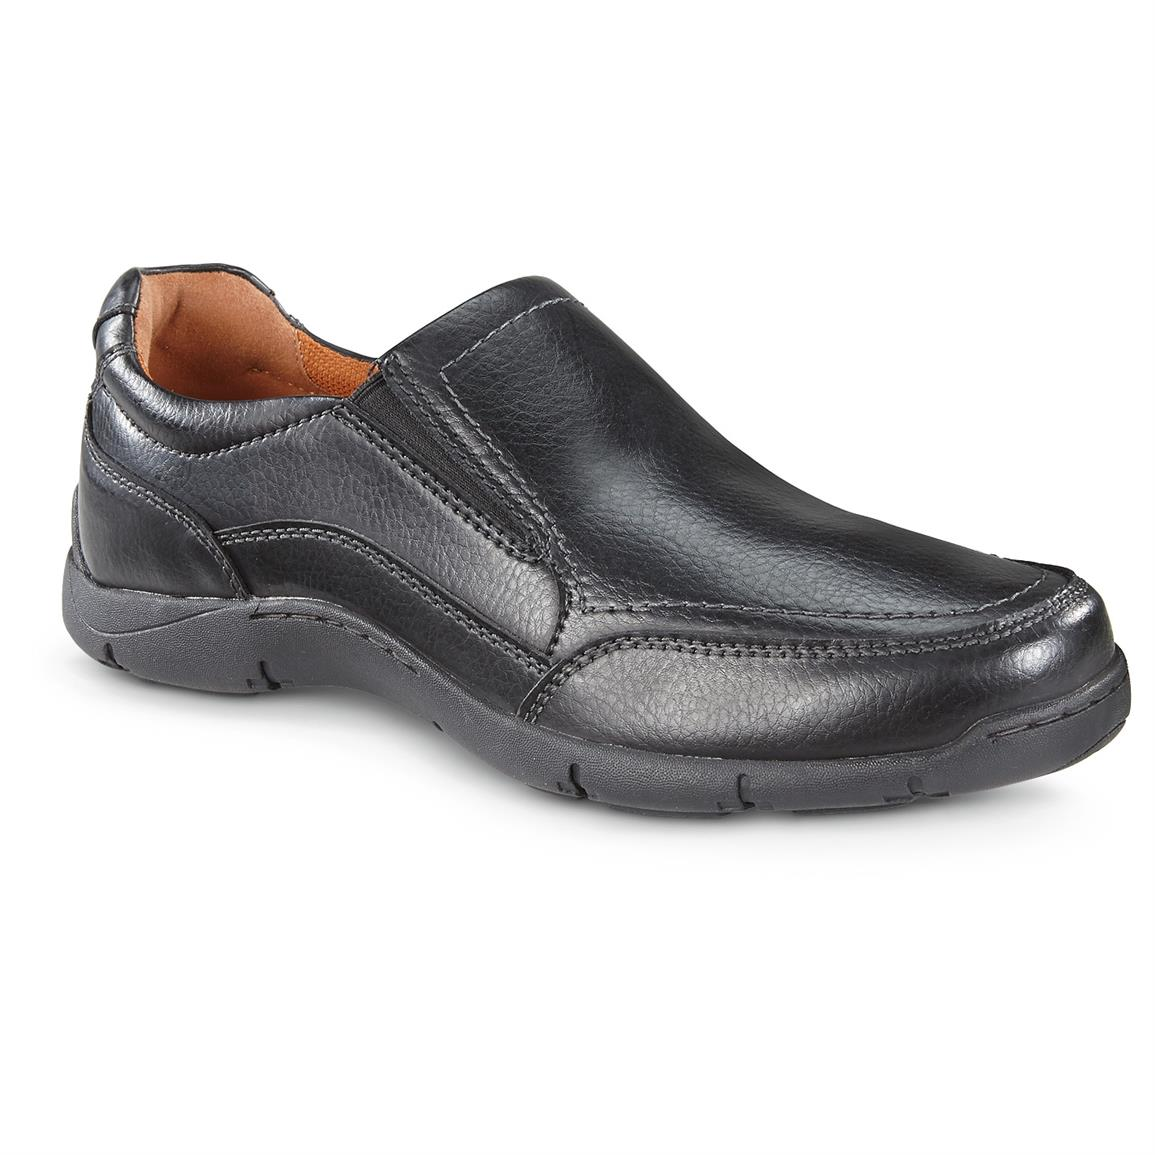 Streetcars Men's Daytona Slip-on Shoes, Black